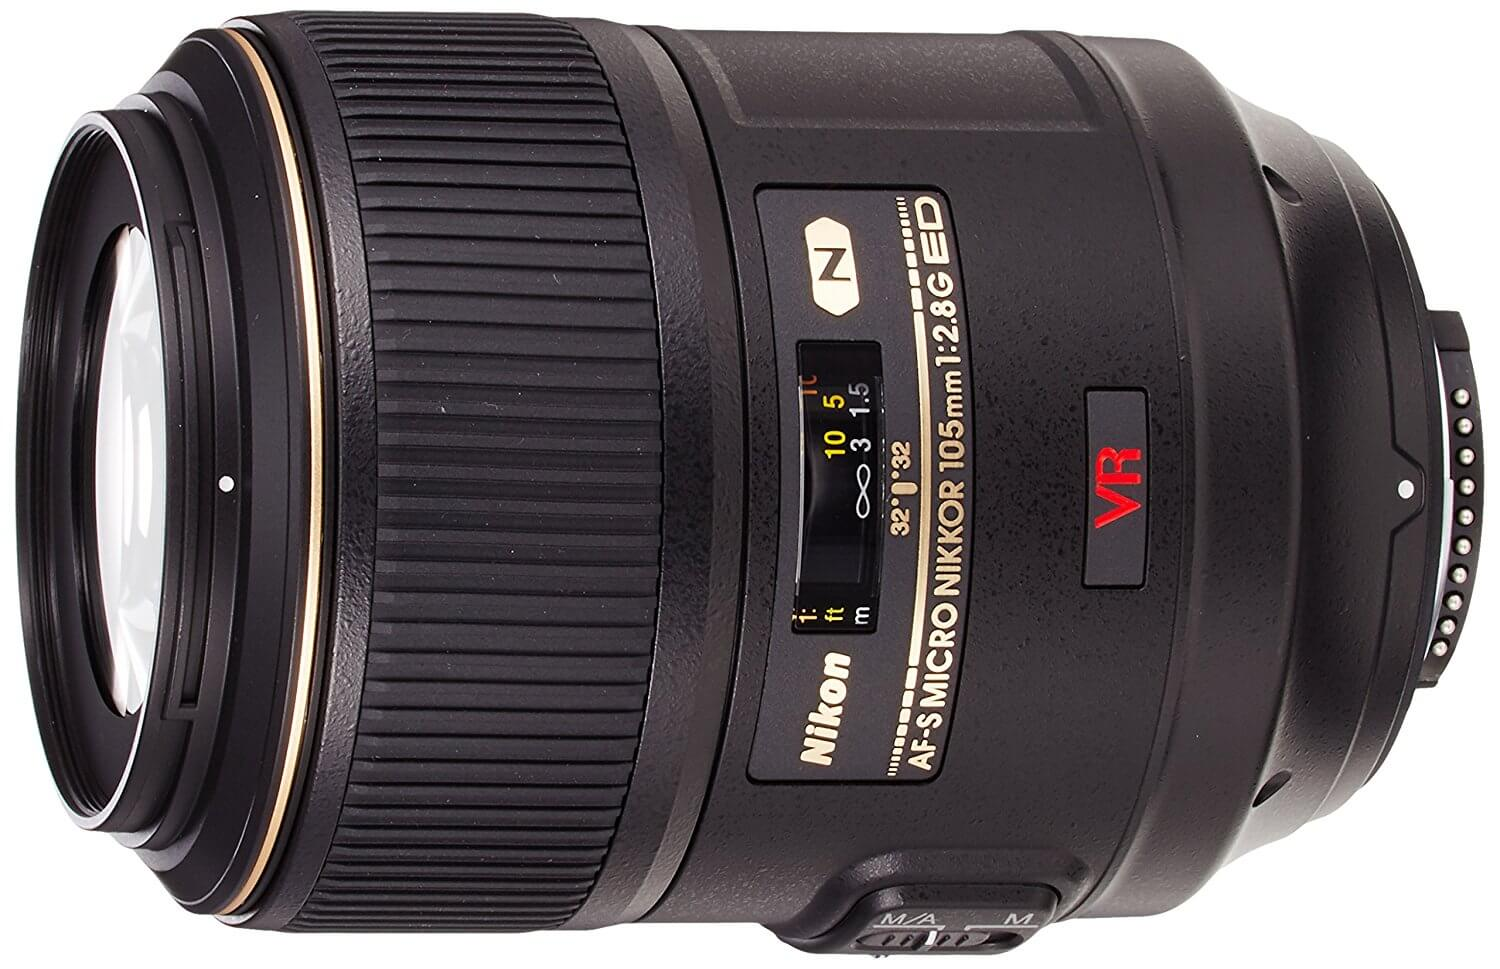 Nikon Nikkor 105mm f2.8G Macro - Nikon Shooter this is the lens for you.